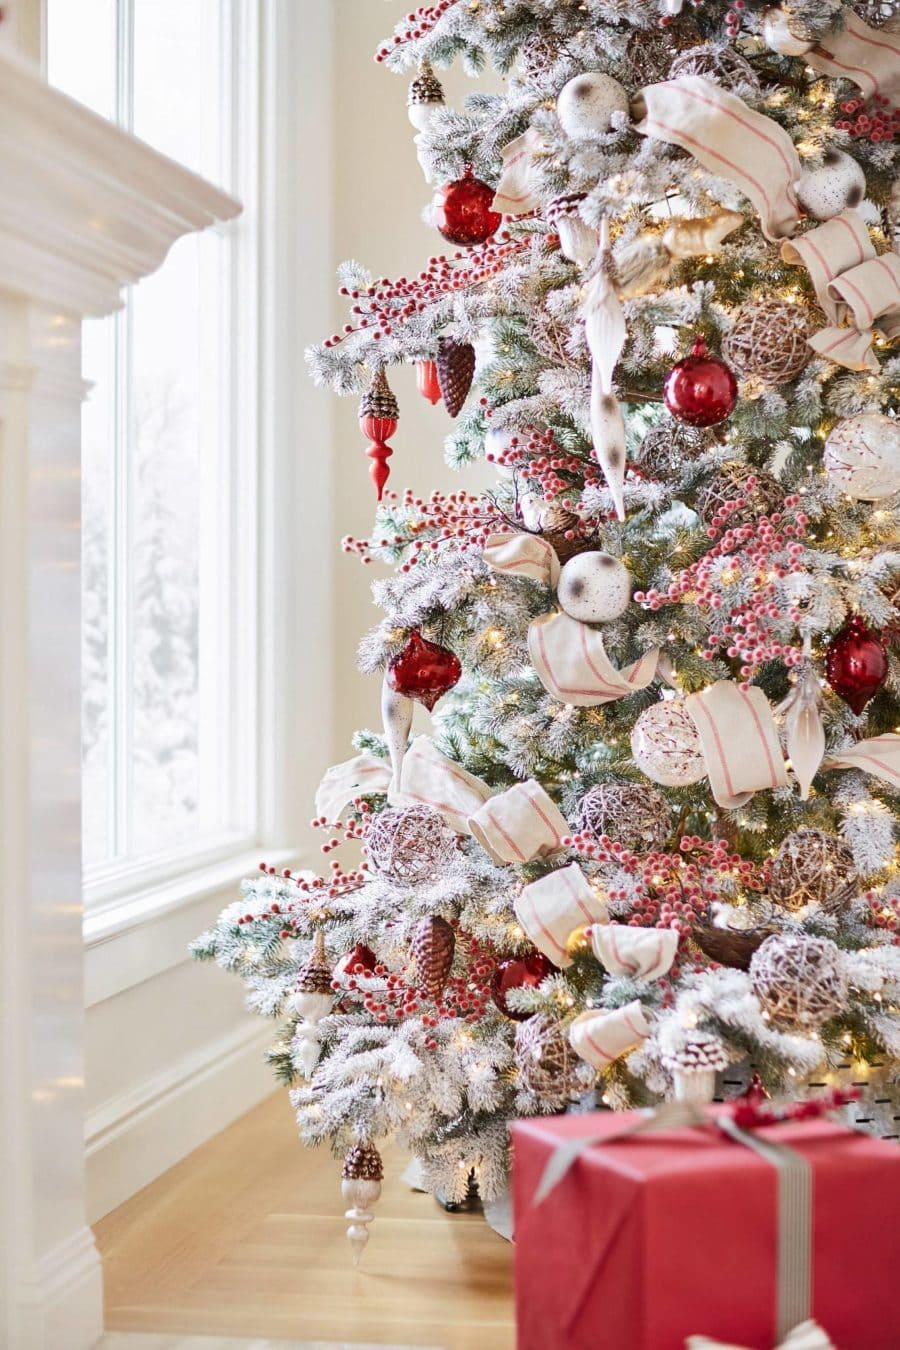 10 Of The Best Red Christmas Tree Ideas To Inspire You